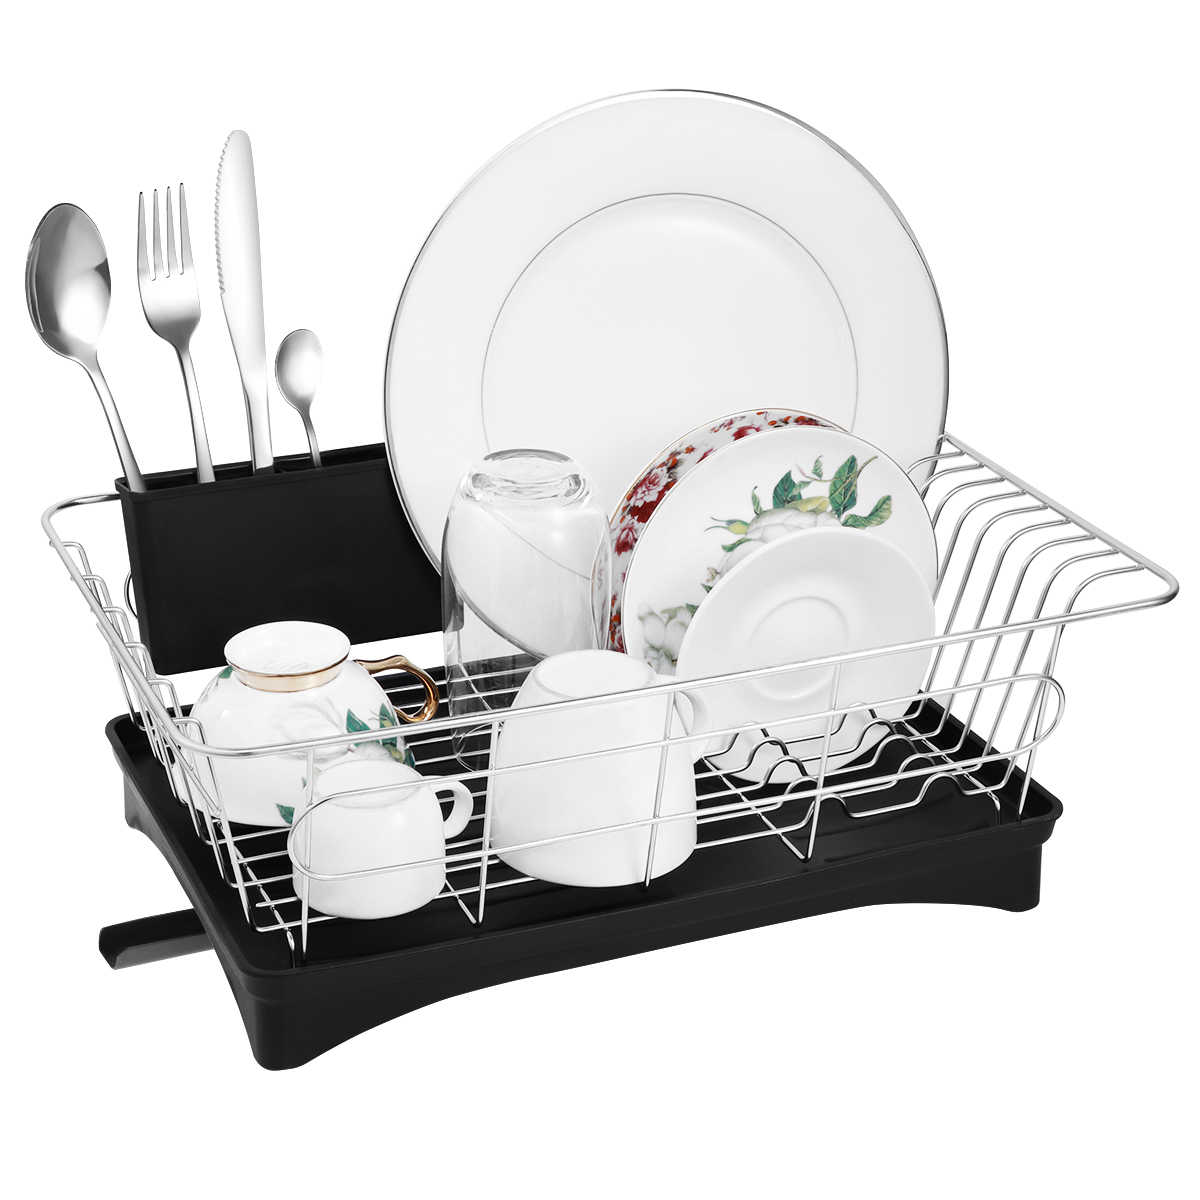 Dish Drying Rack Hollow-out Durable Stainless Steel Detachable Dish Drainer  Tableware Holder Utensil Organizer 53a09c3a2a88